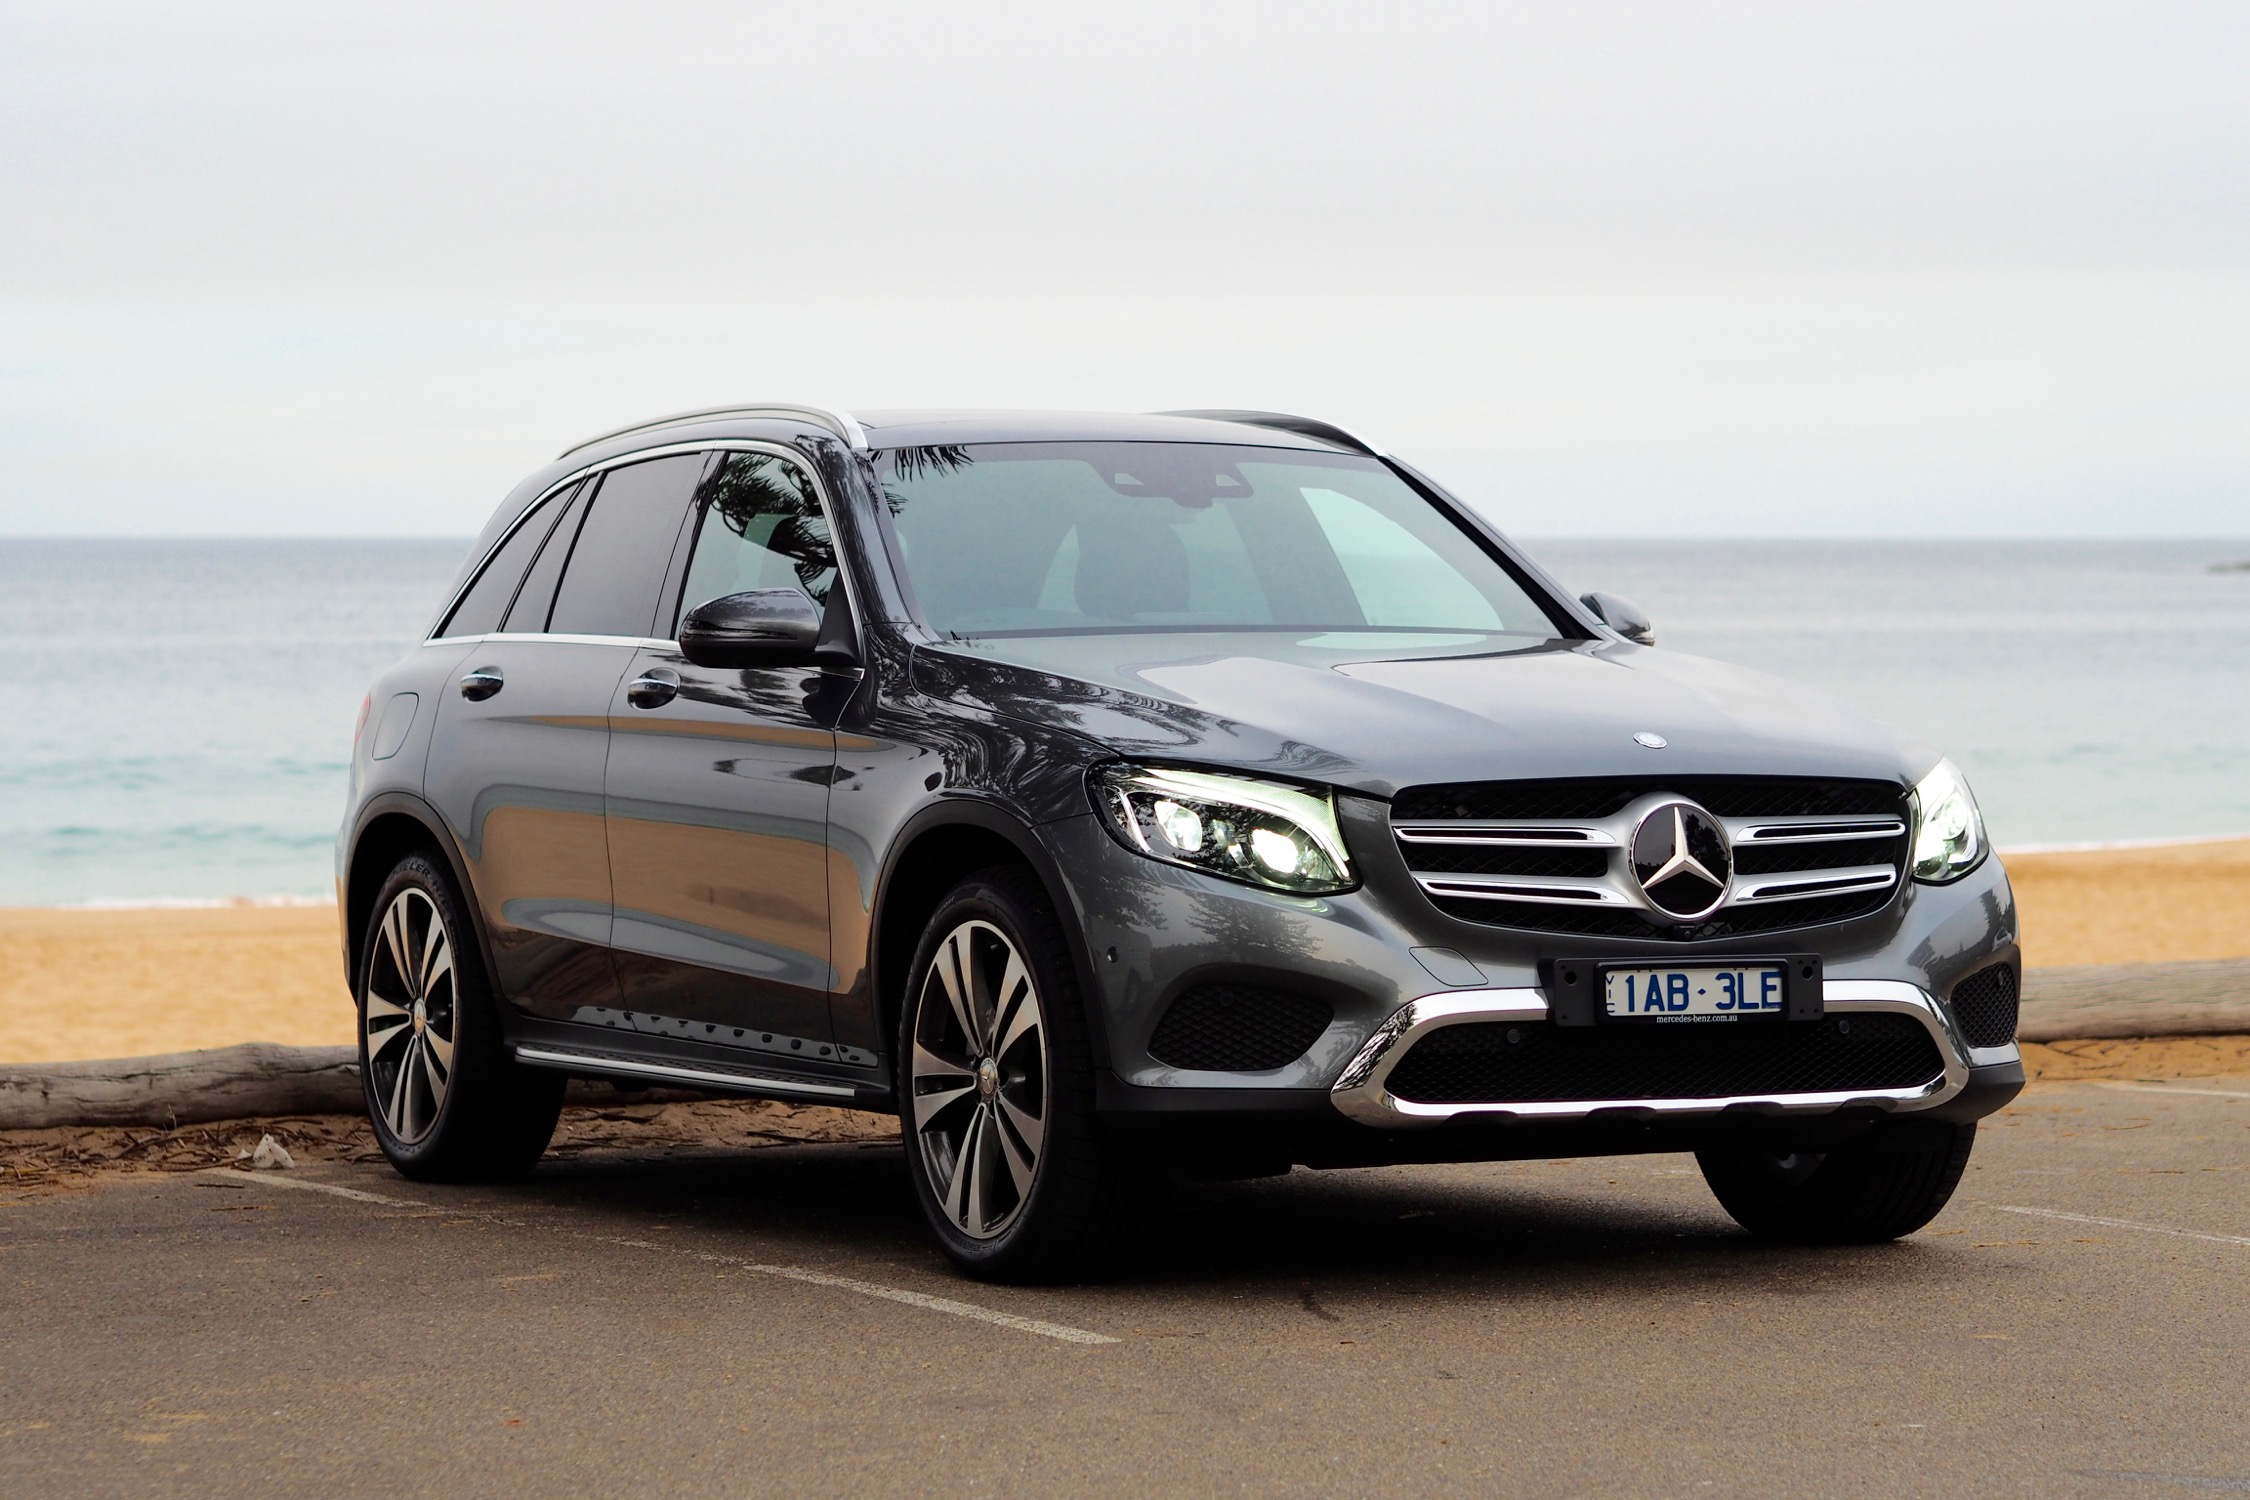 Mercedes GLC 250d Review